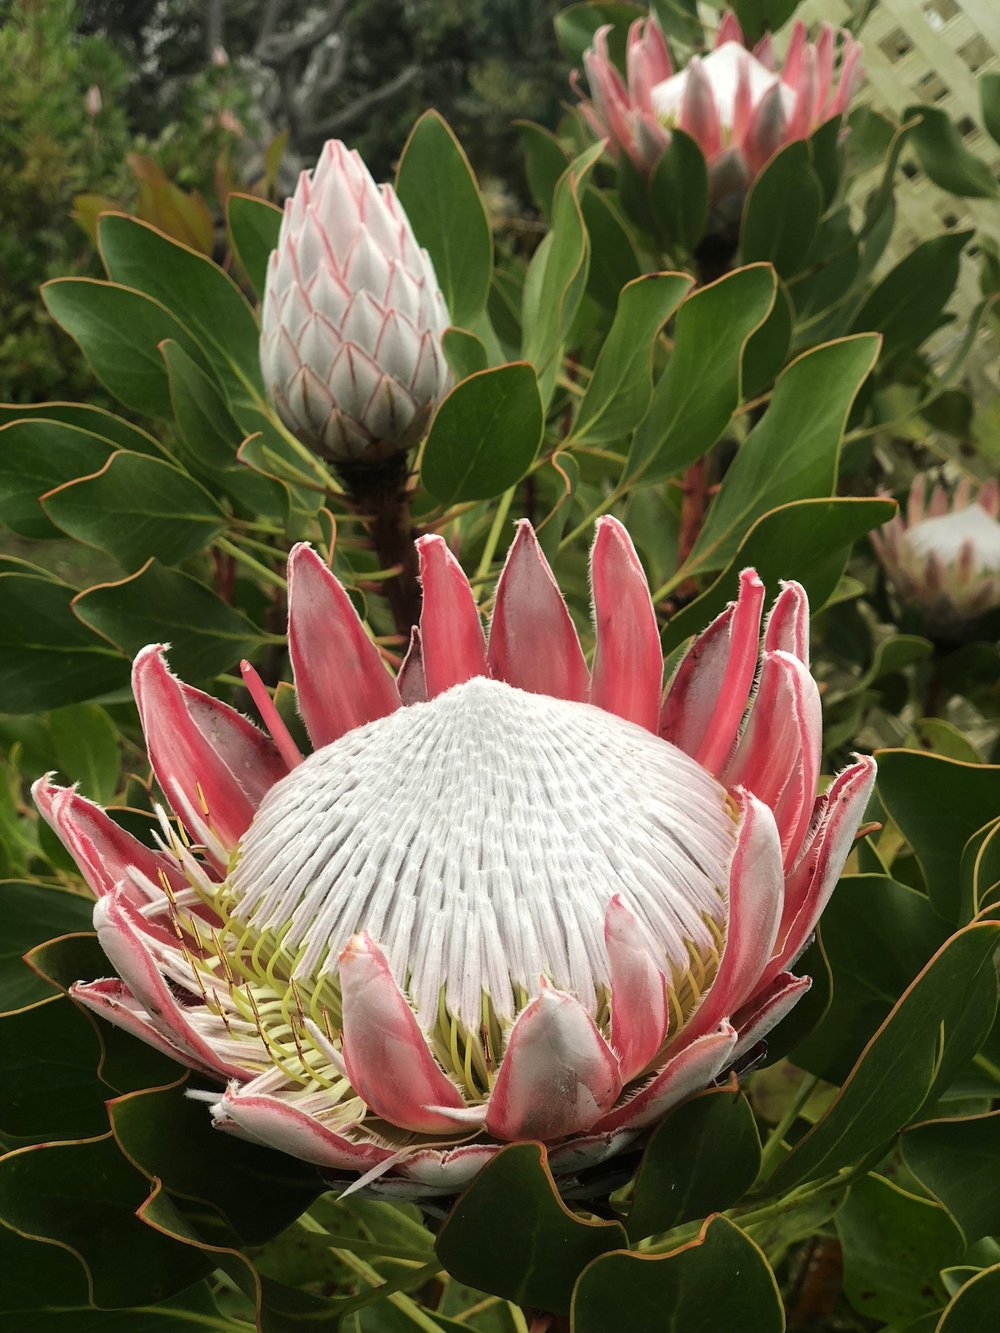 huge protea flower at the Maui Lavender farm, Maui. Boldlygotravel.com